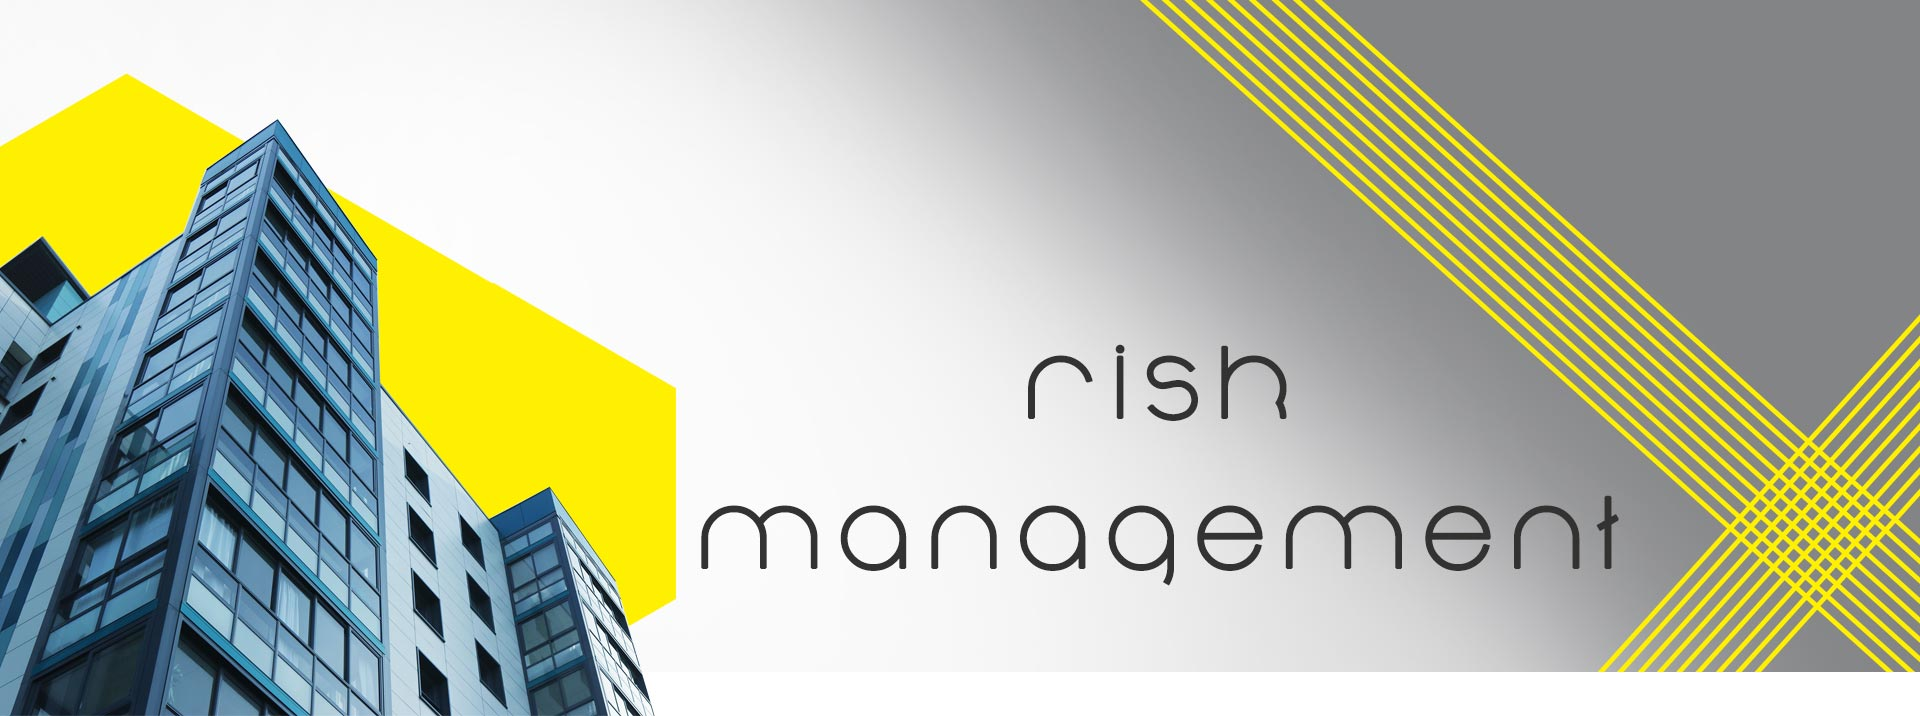 risk-management-banner.jpg